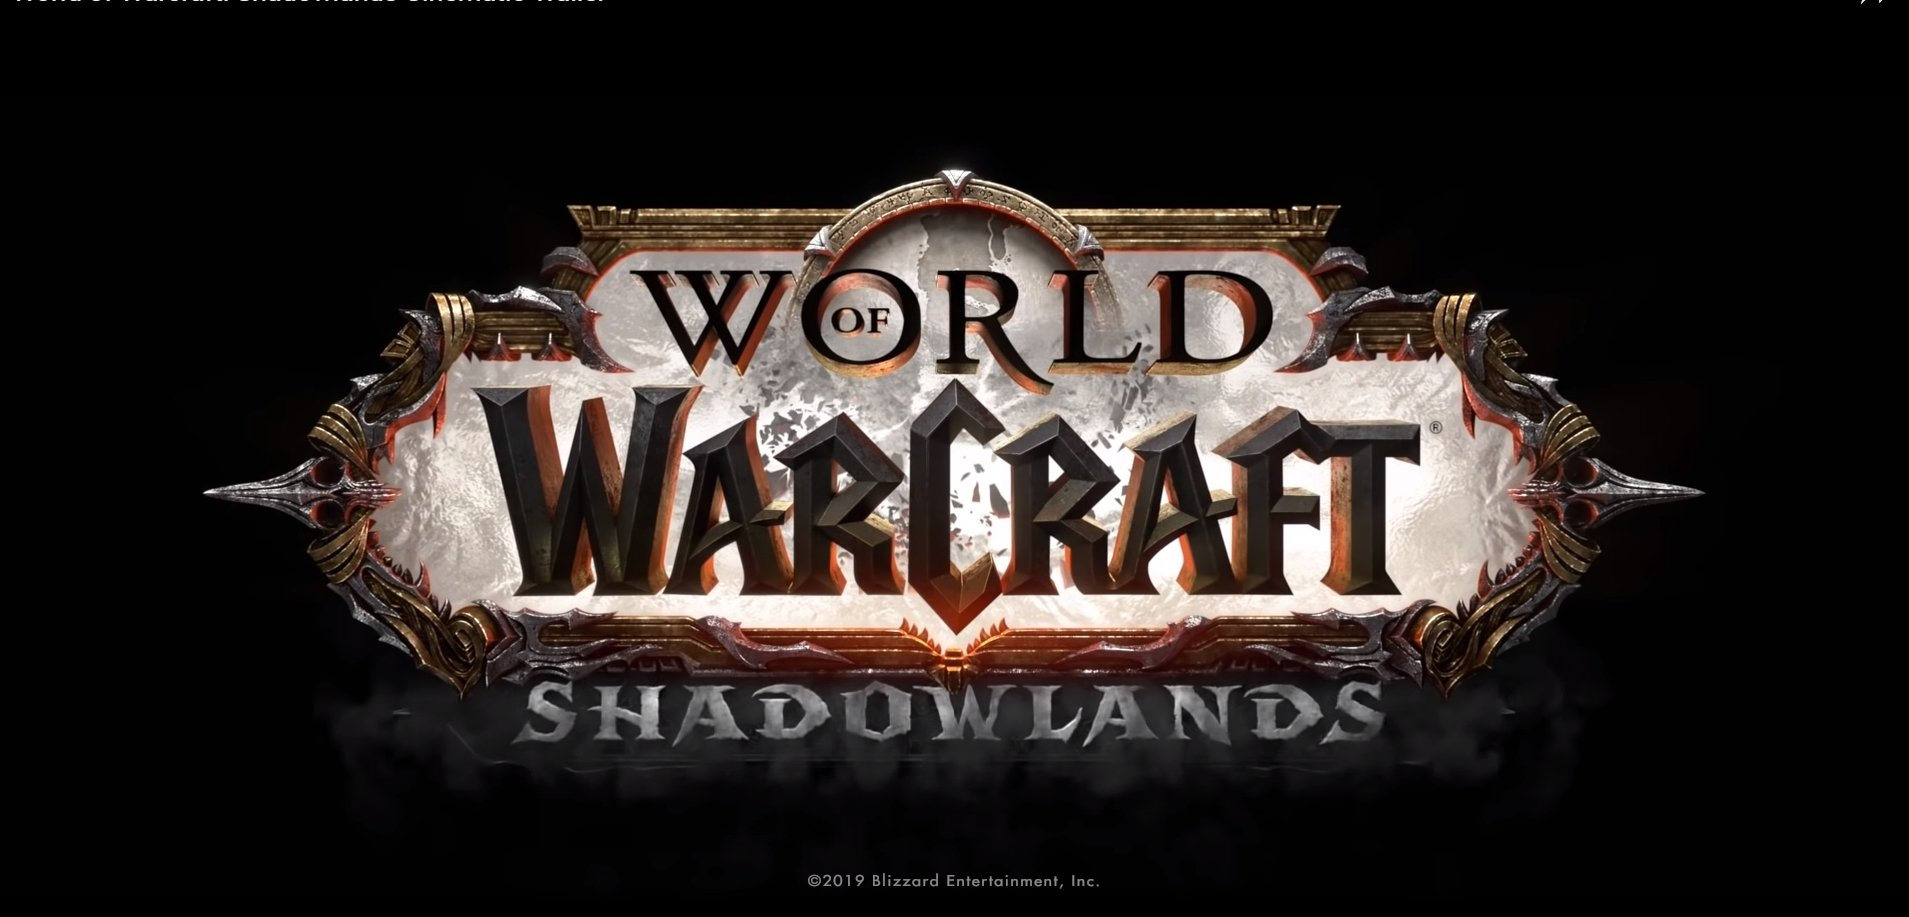 World Of Warcraft Game Director Ion Hazzikostas Releases Development Blog On Upcoming Shadowlands Expansion